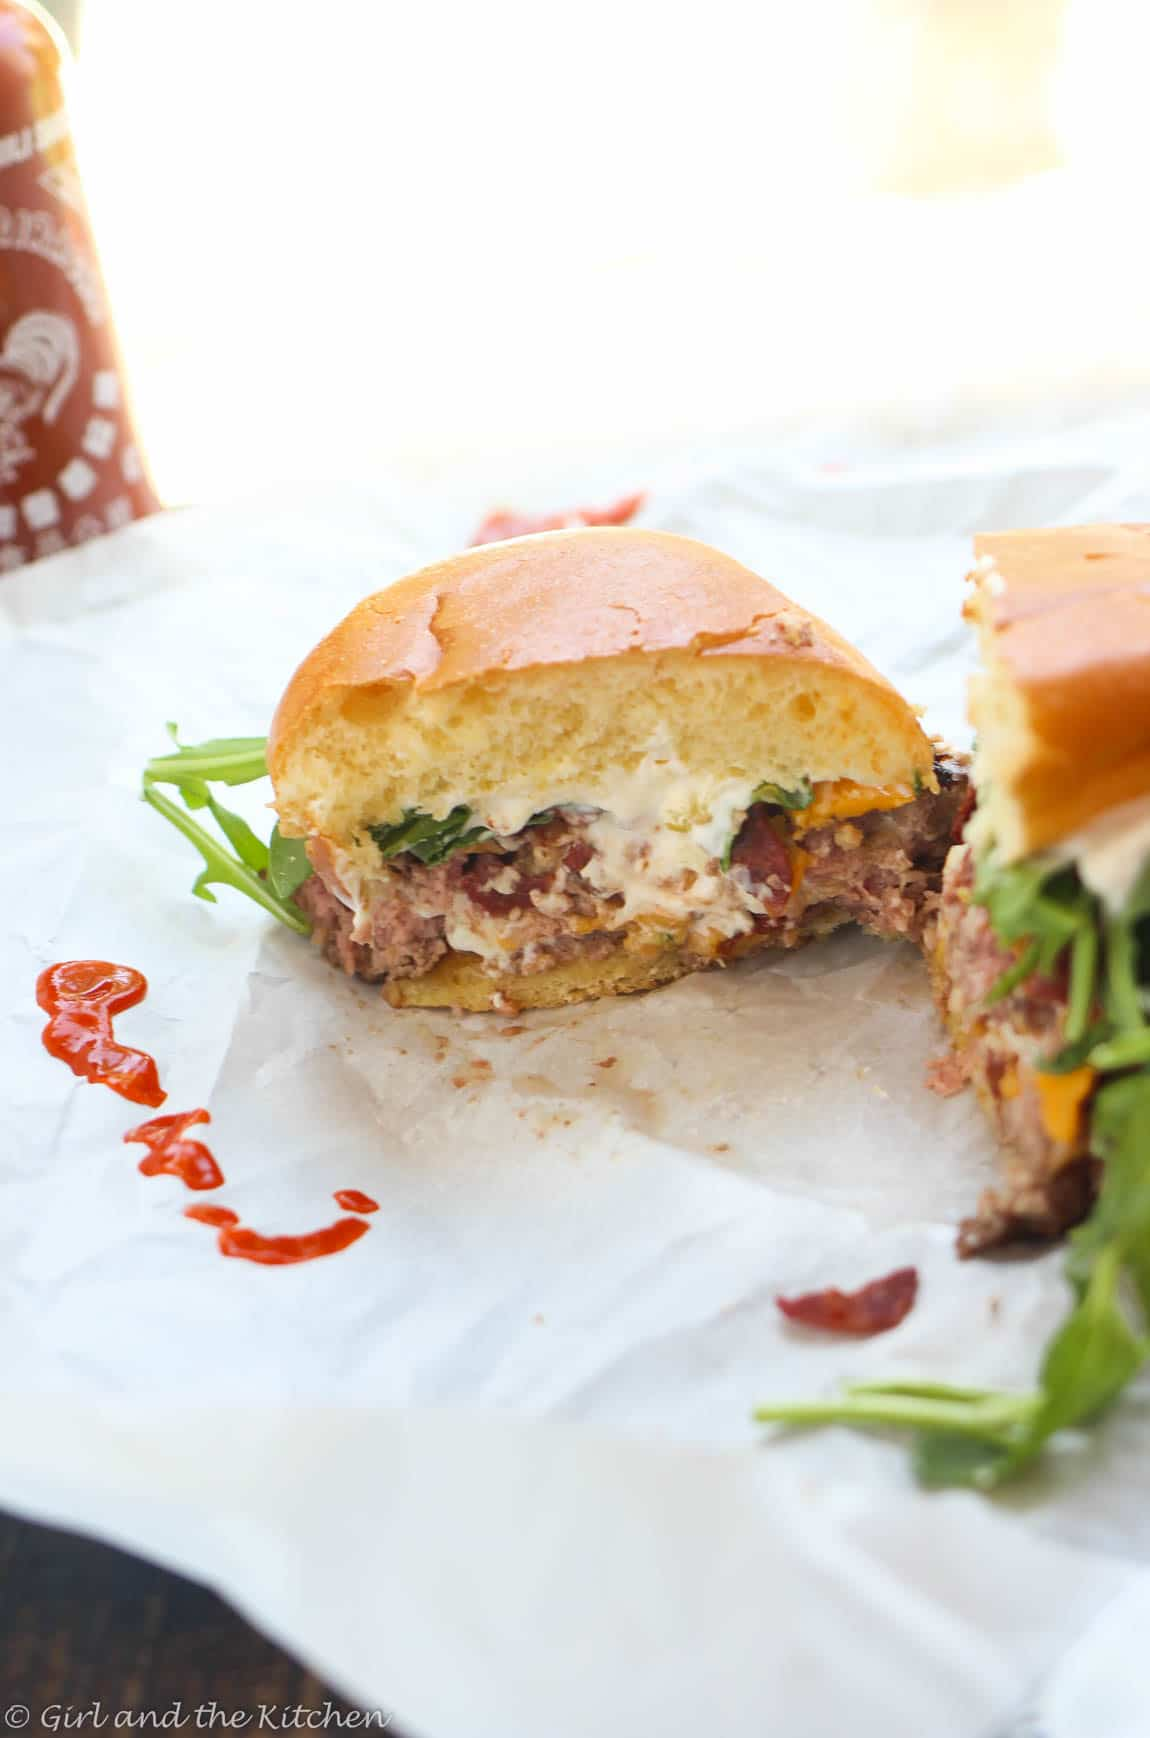 Meet the ultimate stuffed burger to rule your BBQ!!! This juicy stuffed burger oozes with melted cheeses and is topped with crispy bacon and peppery arugula